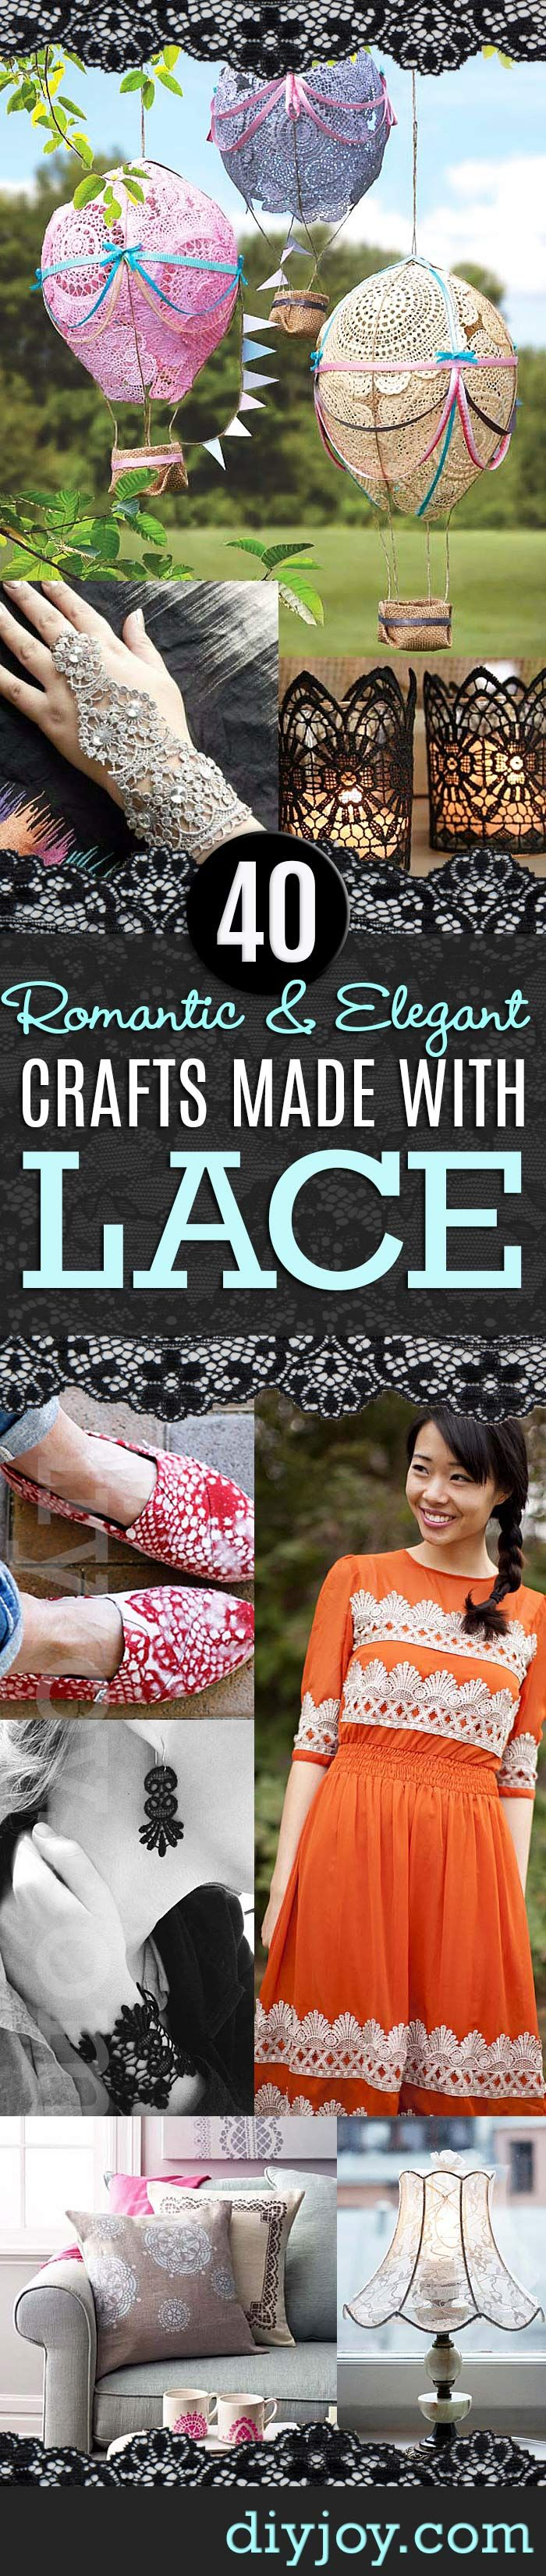 40 Romantic and Elegant DIY Crafts You Can Make with Lace | Cool DIY Ideas for…